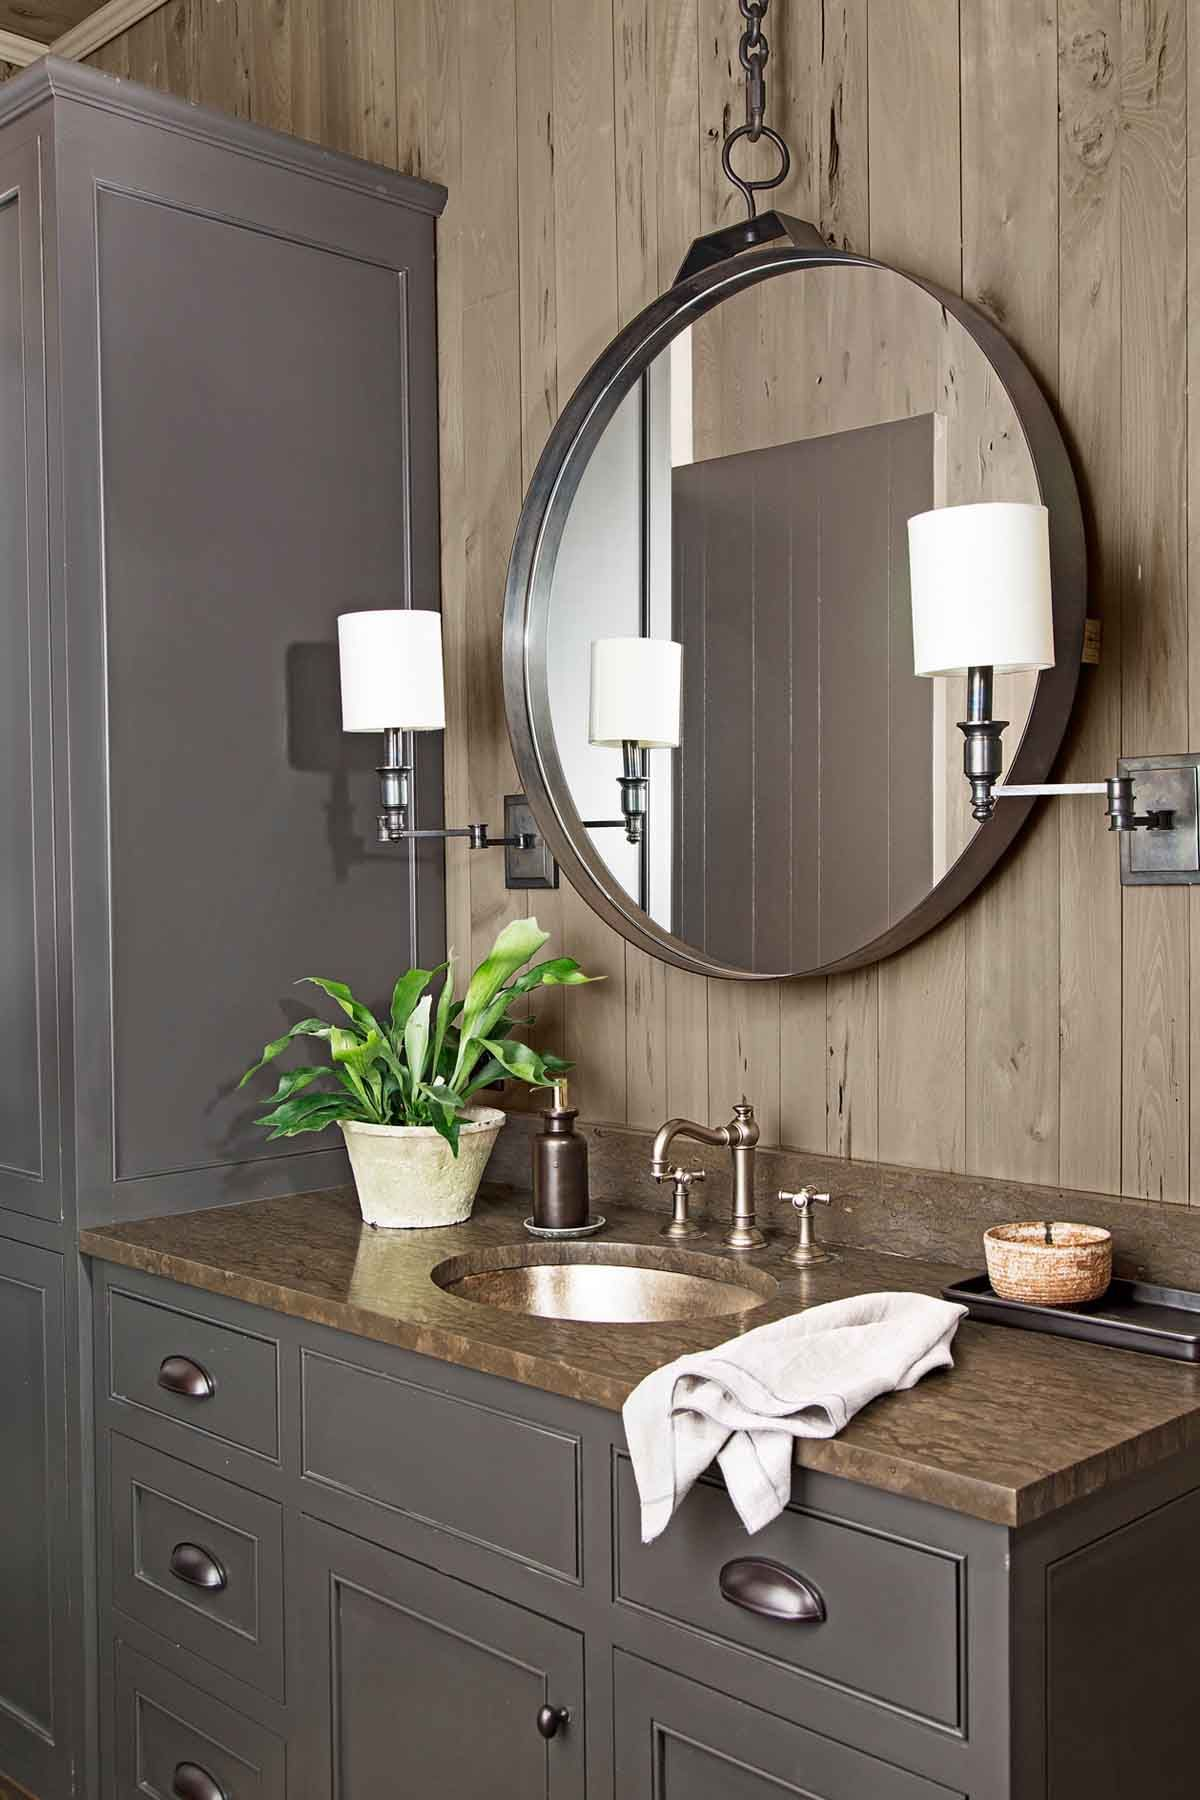 37 rustic bathroom decor ideas - rustic modern bathroom designs